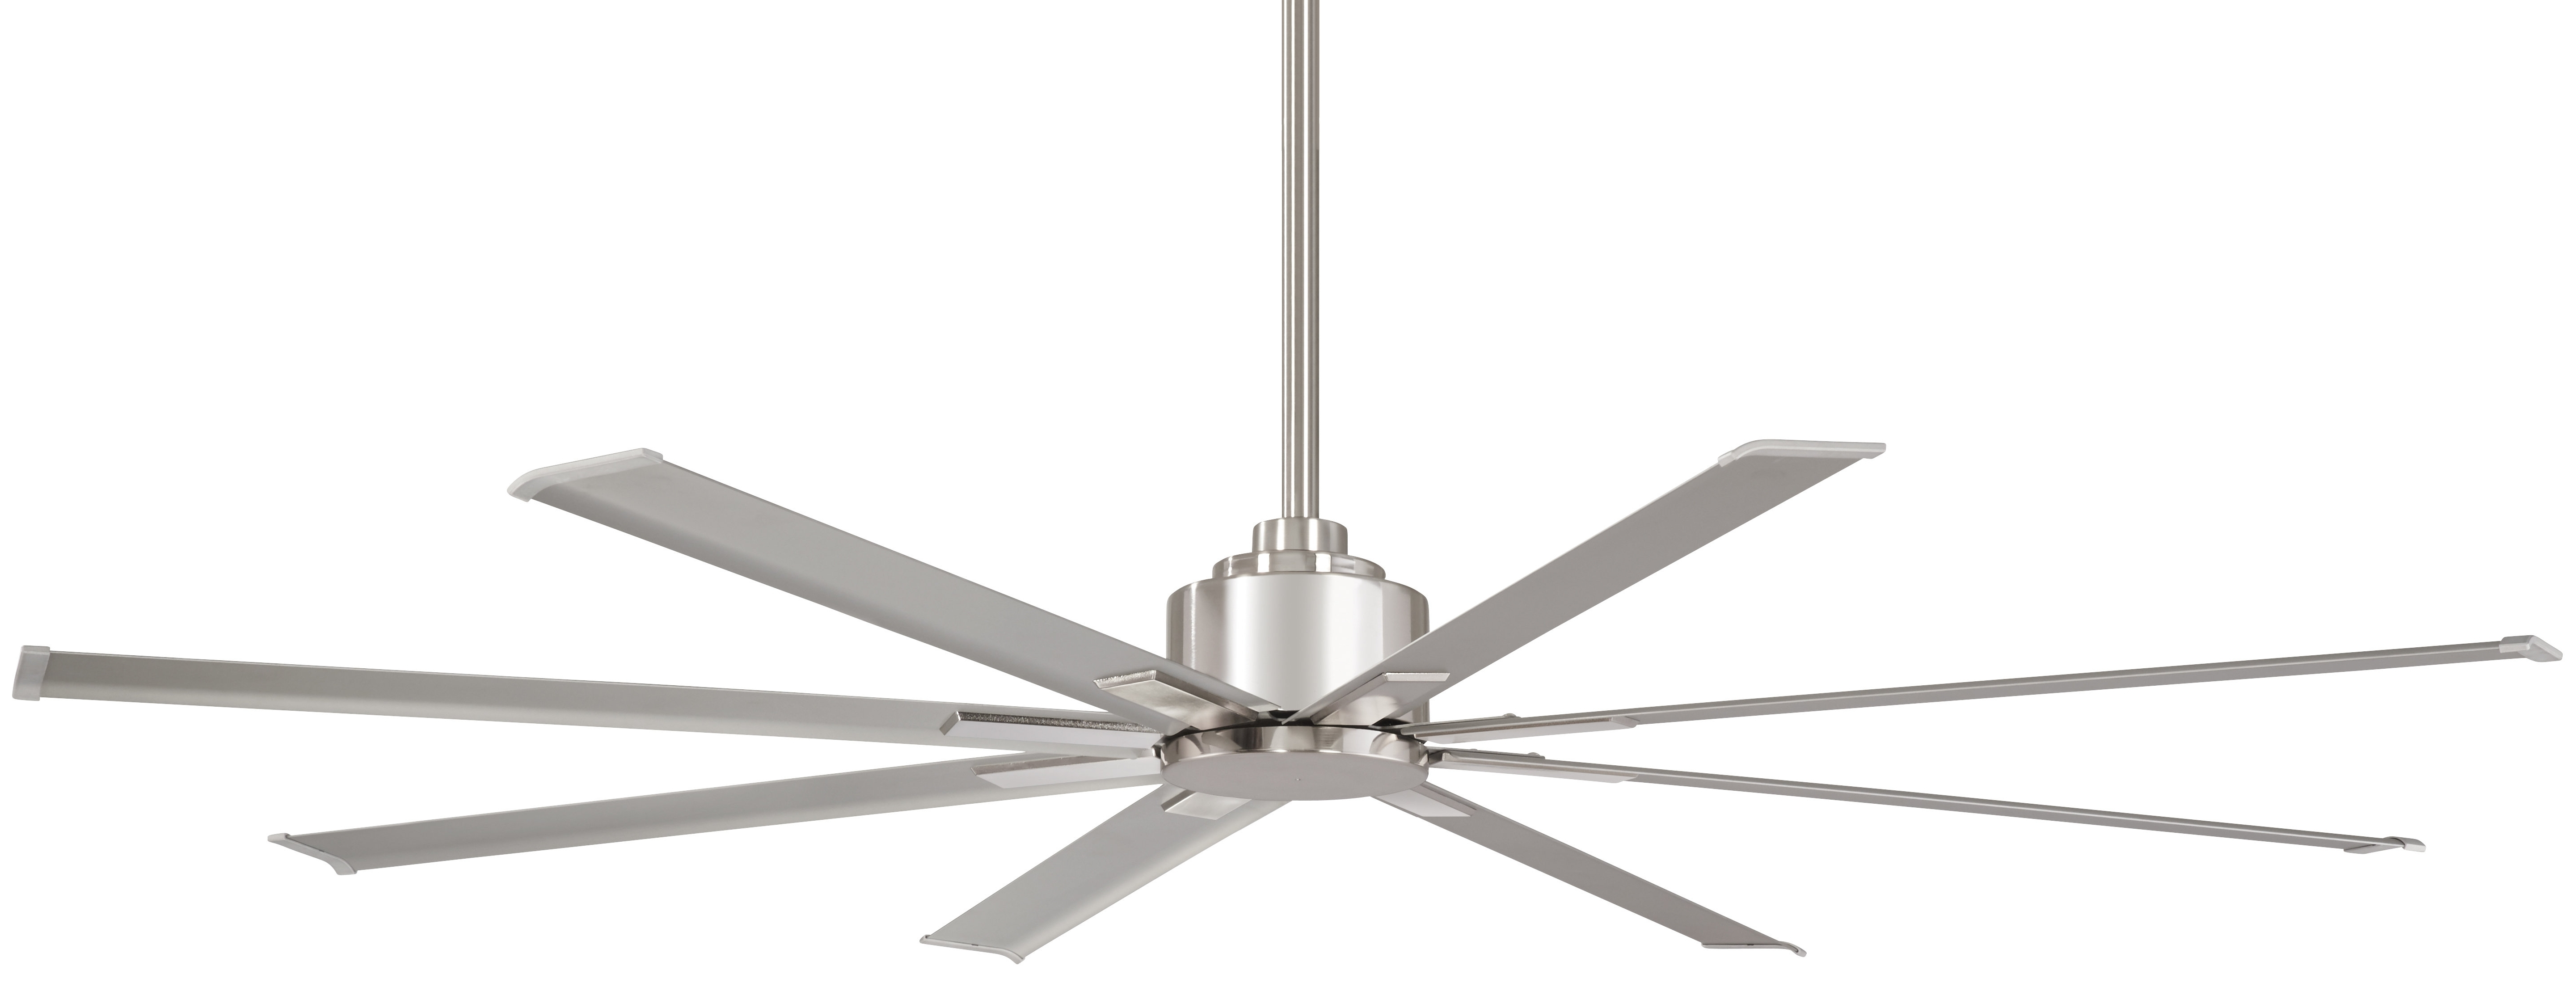 "Most Recent Minka Aire 65"" Xtreme 8 Blade Outdoor Ceiling Fan With Remote Within Outdoor Ceiling Fans With Metal Blades (View 2 of 20)"